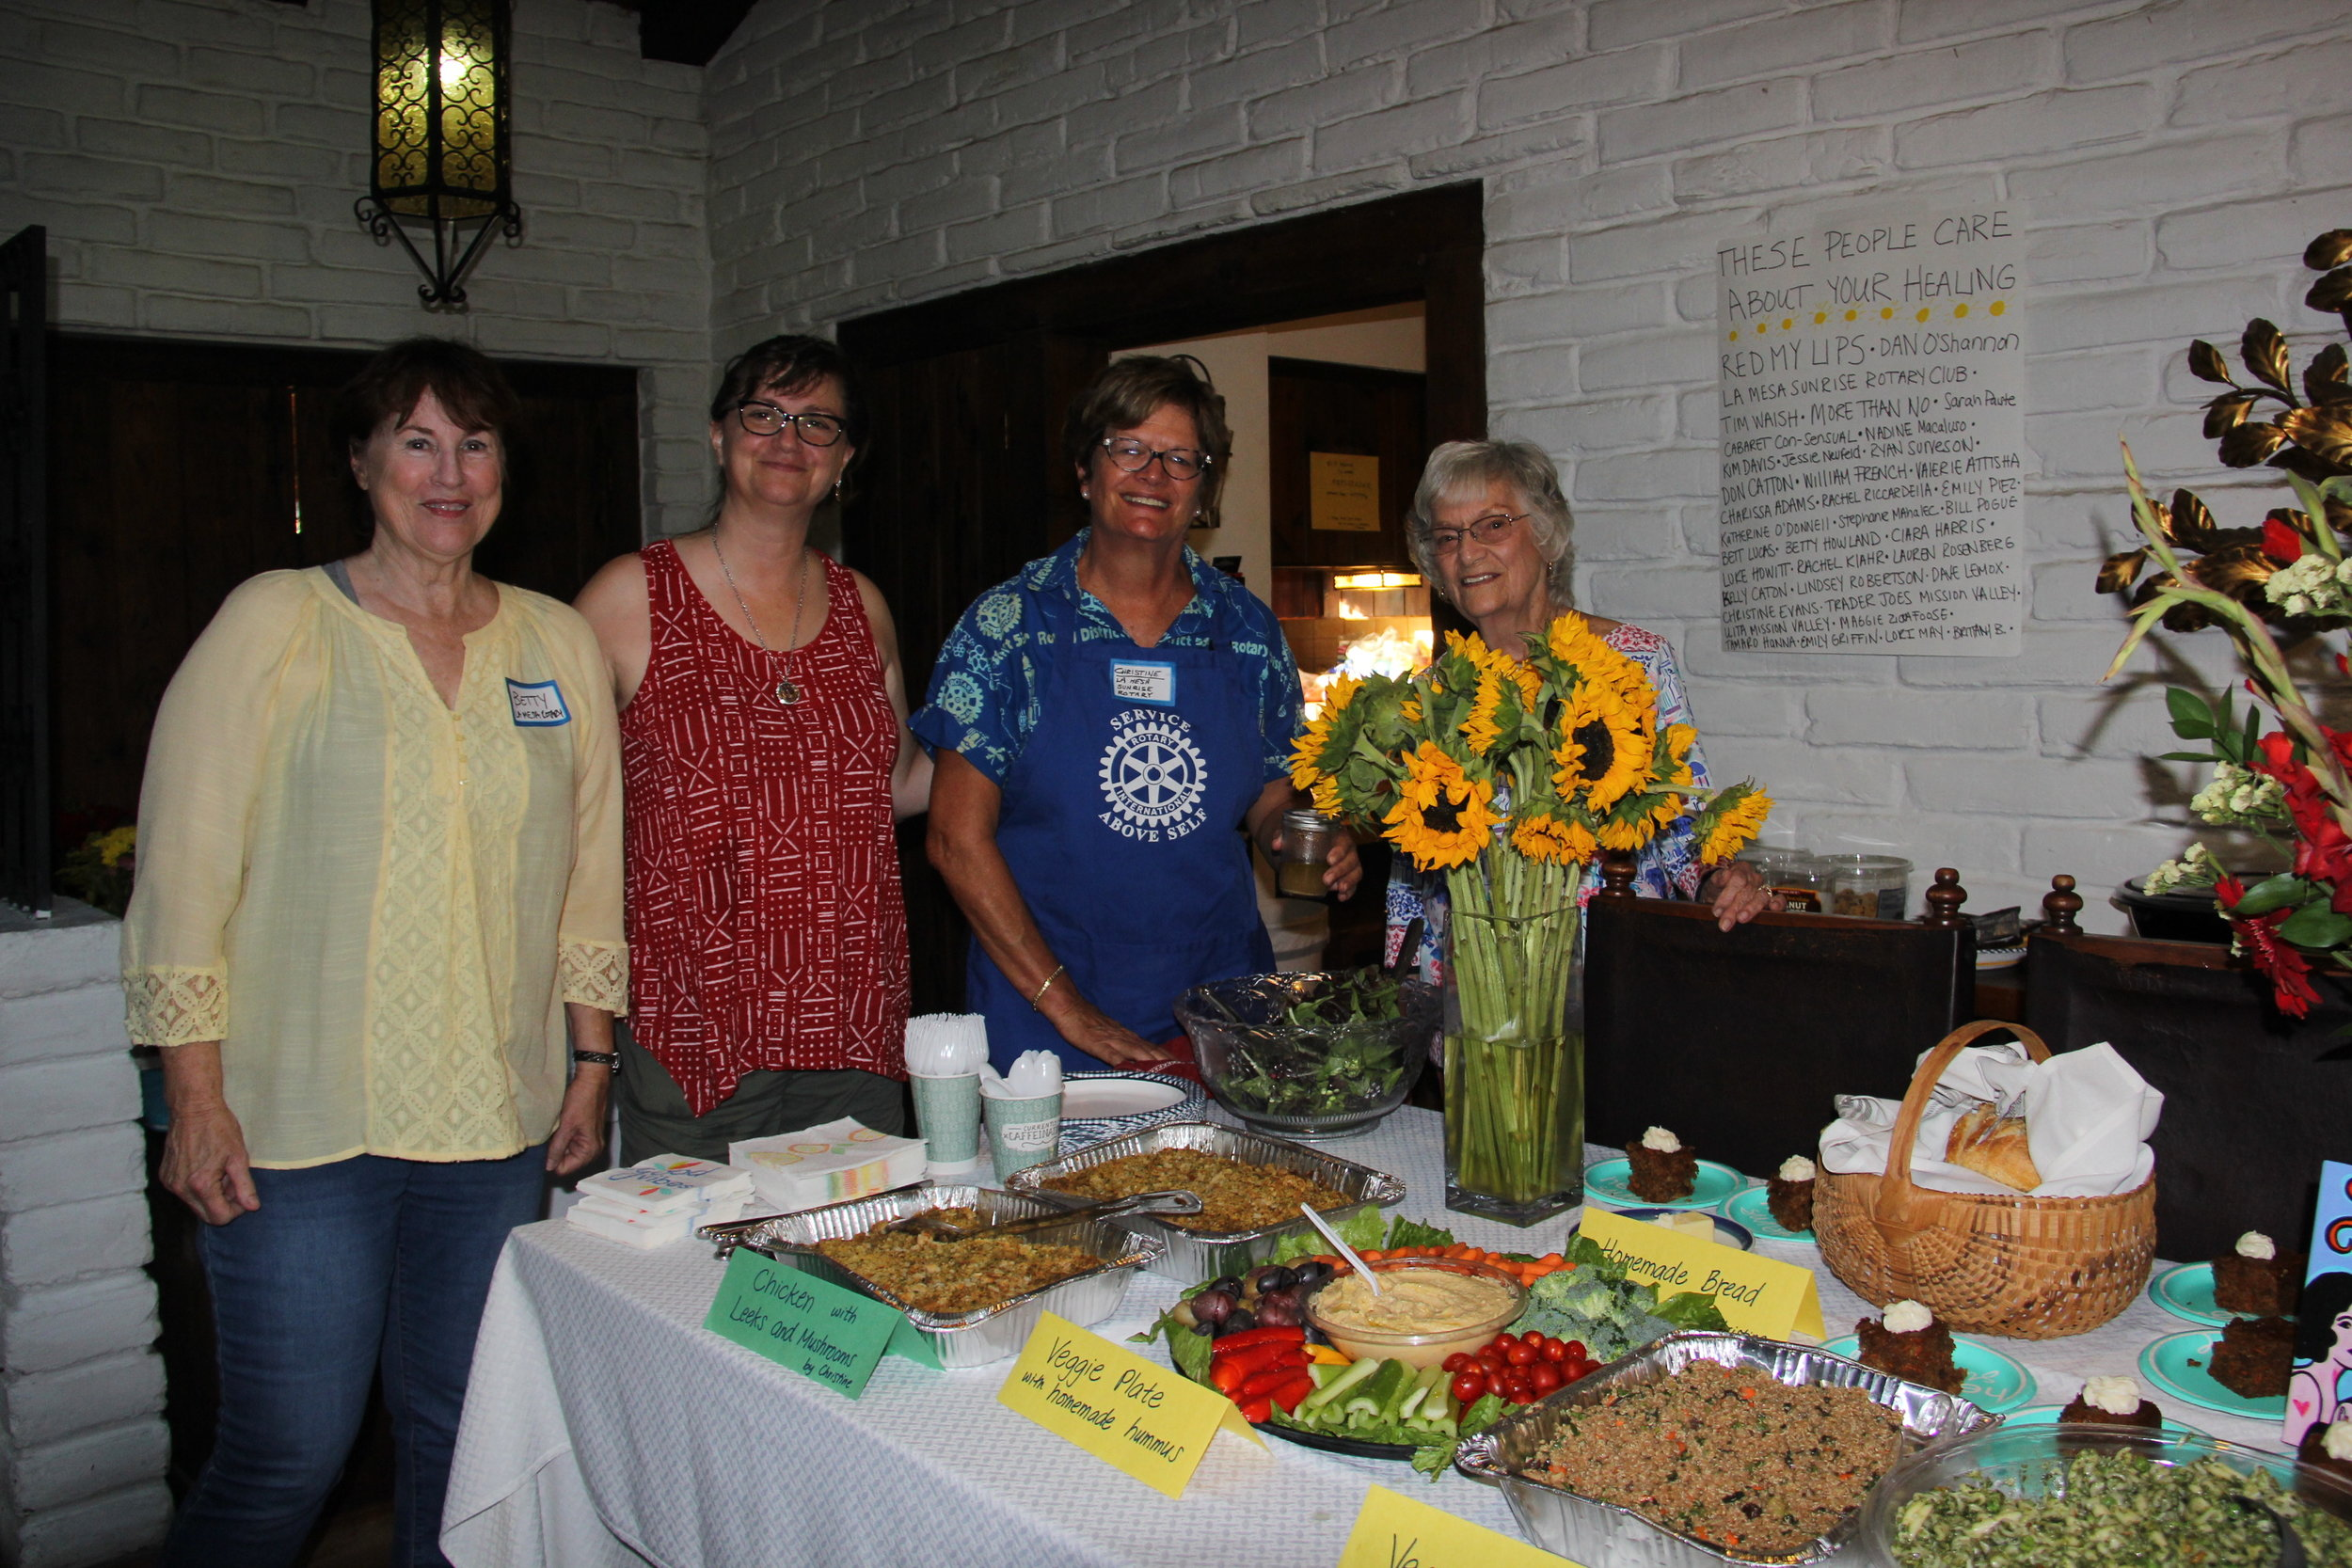 La Mesa Sunrise Rotary provided an incredible healthy dinner for survivors, as well as volunteered, and sponsored two survivors to attend. Amazing vegan carrot cake Elena! And the thoughtful breakfast made their morning Betty